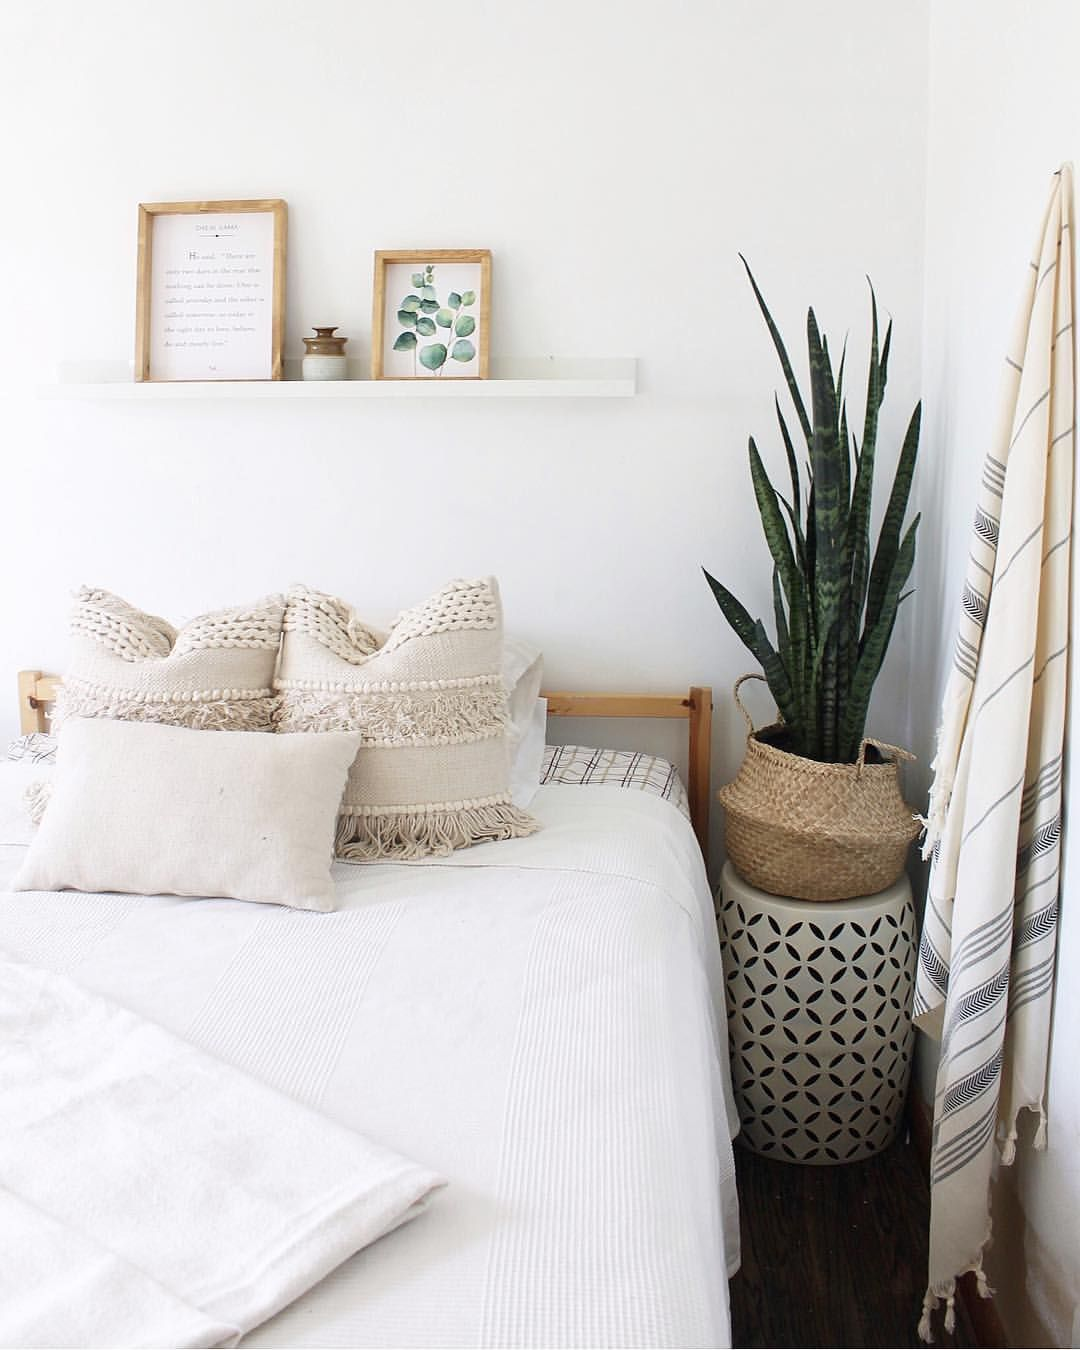 Pin By Elly Chipman On H O U S E M Bedroom Decor Cozy Home